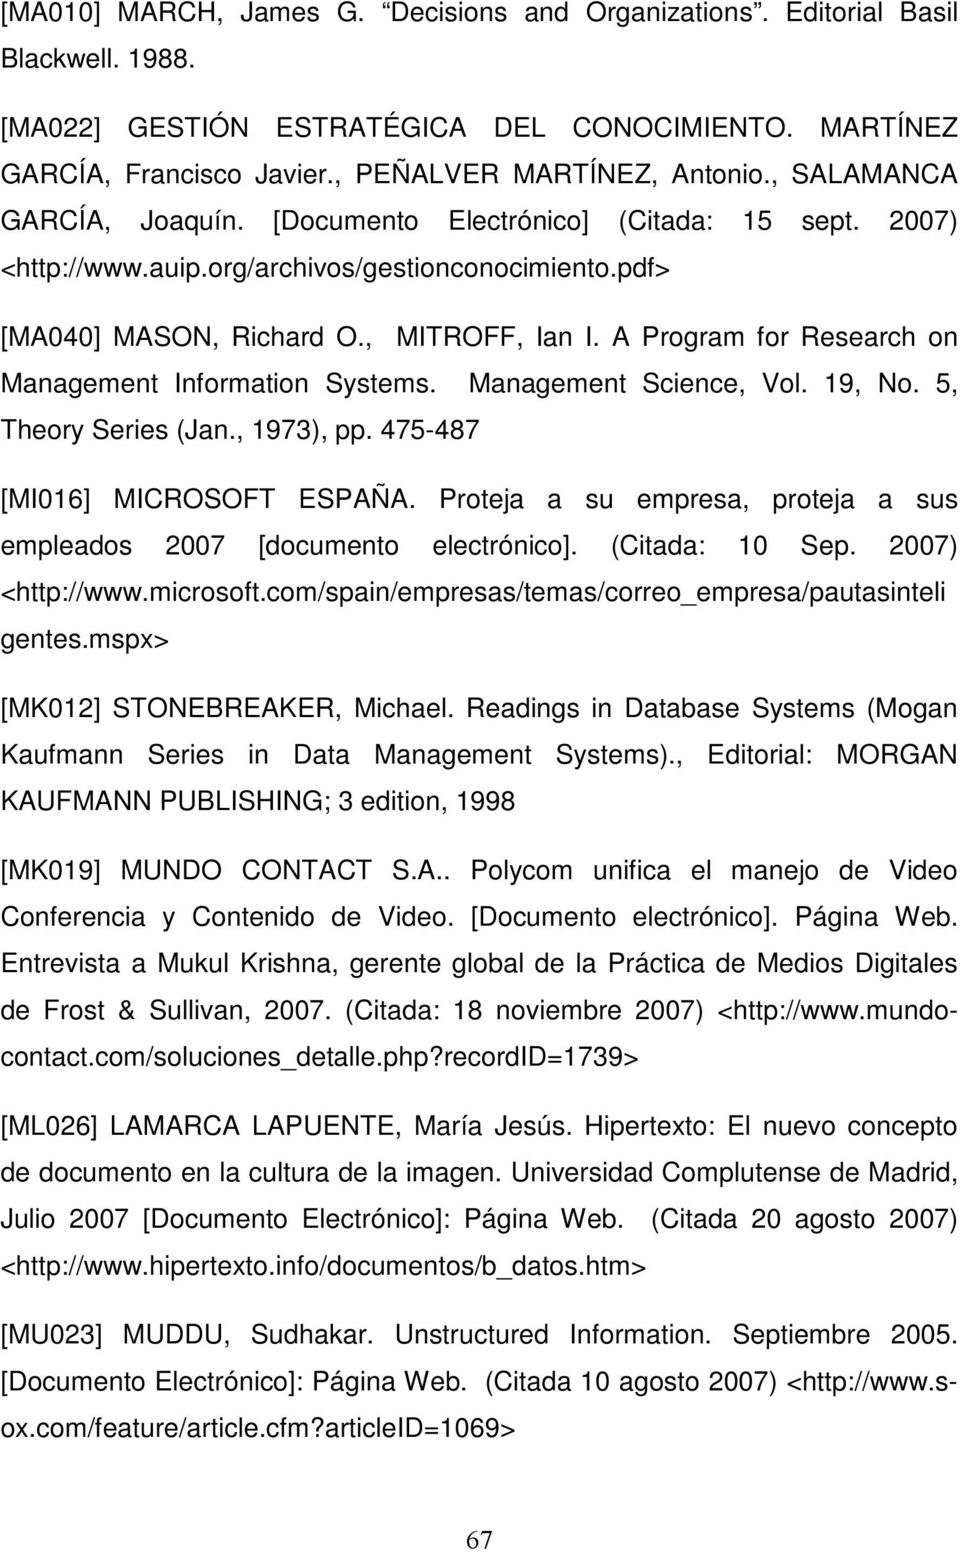 A Program for Research on Management Information Systems. Management Science, Vol. 19, No. 5, Theory Series (Jan., 1973), pp. 475-487 [MI016] MICROSOFT ESPAÑA.